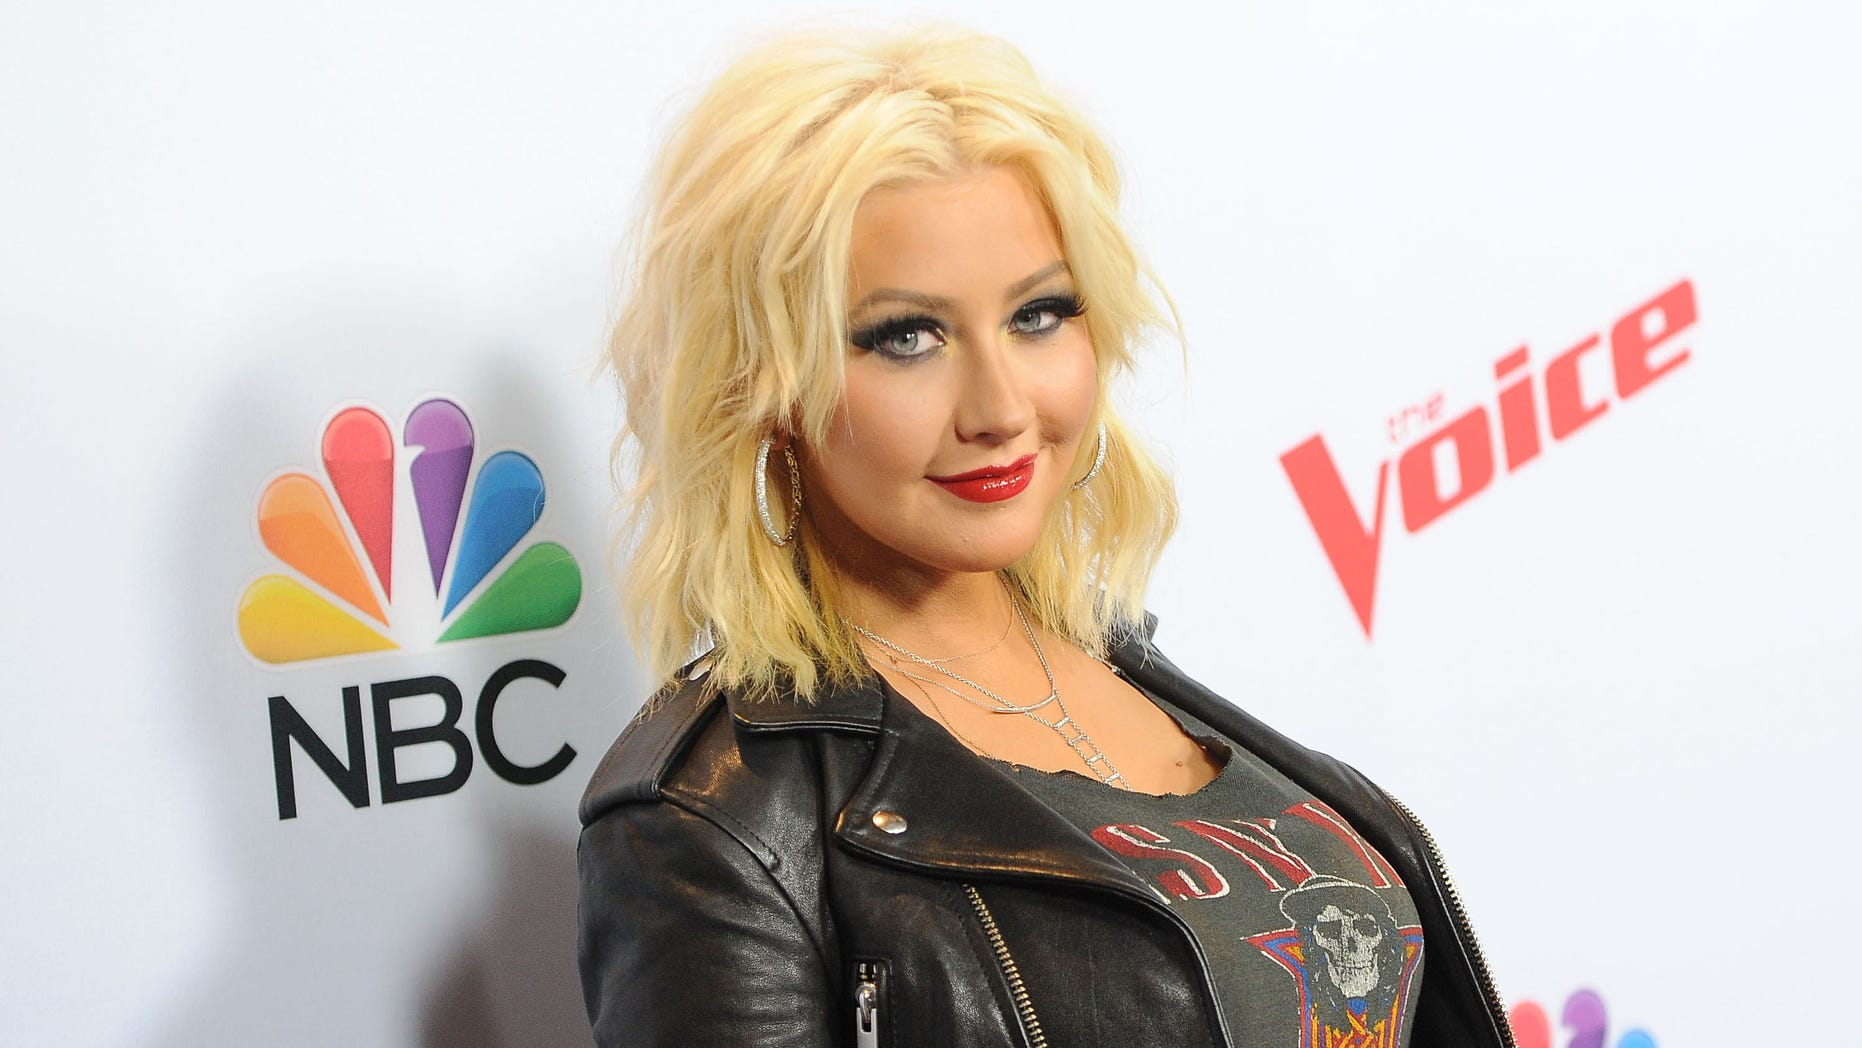 """Aguilera arrives at """"The Voice"""" red carpet event on April 23, 2015 in West Hollywood, California."""